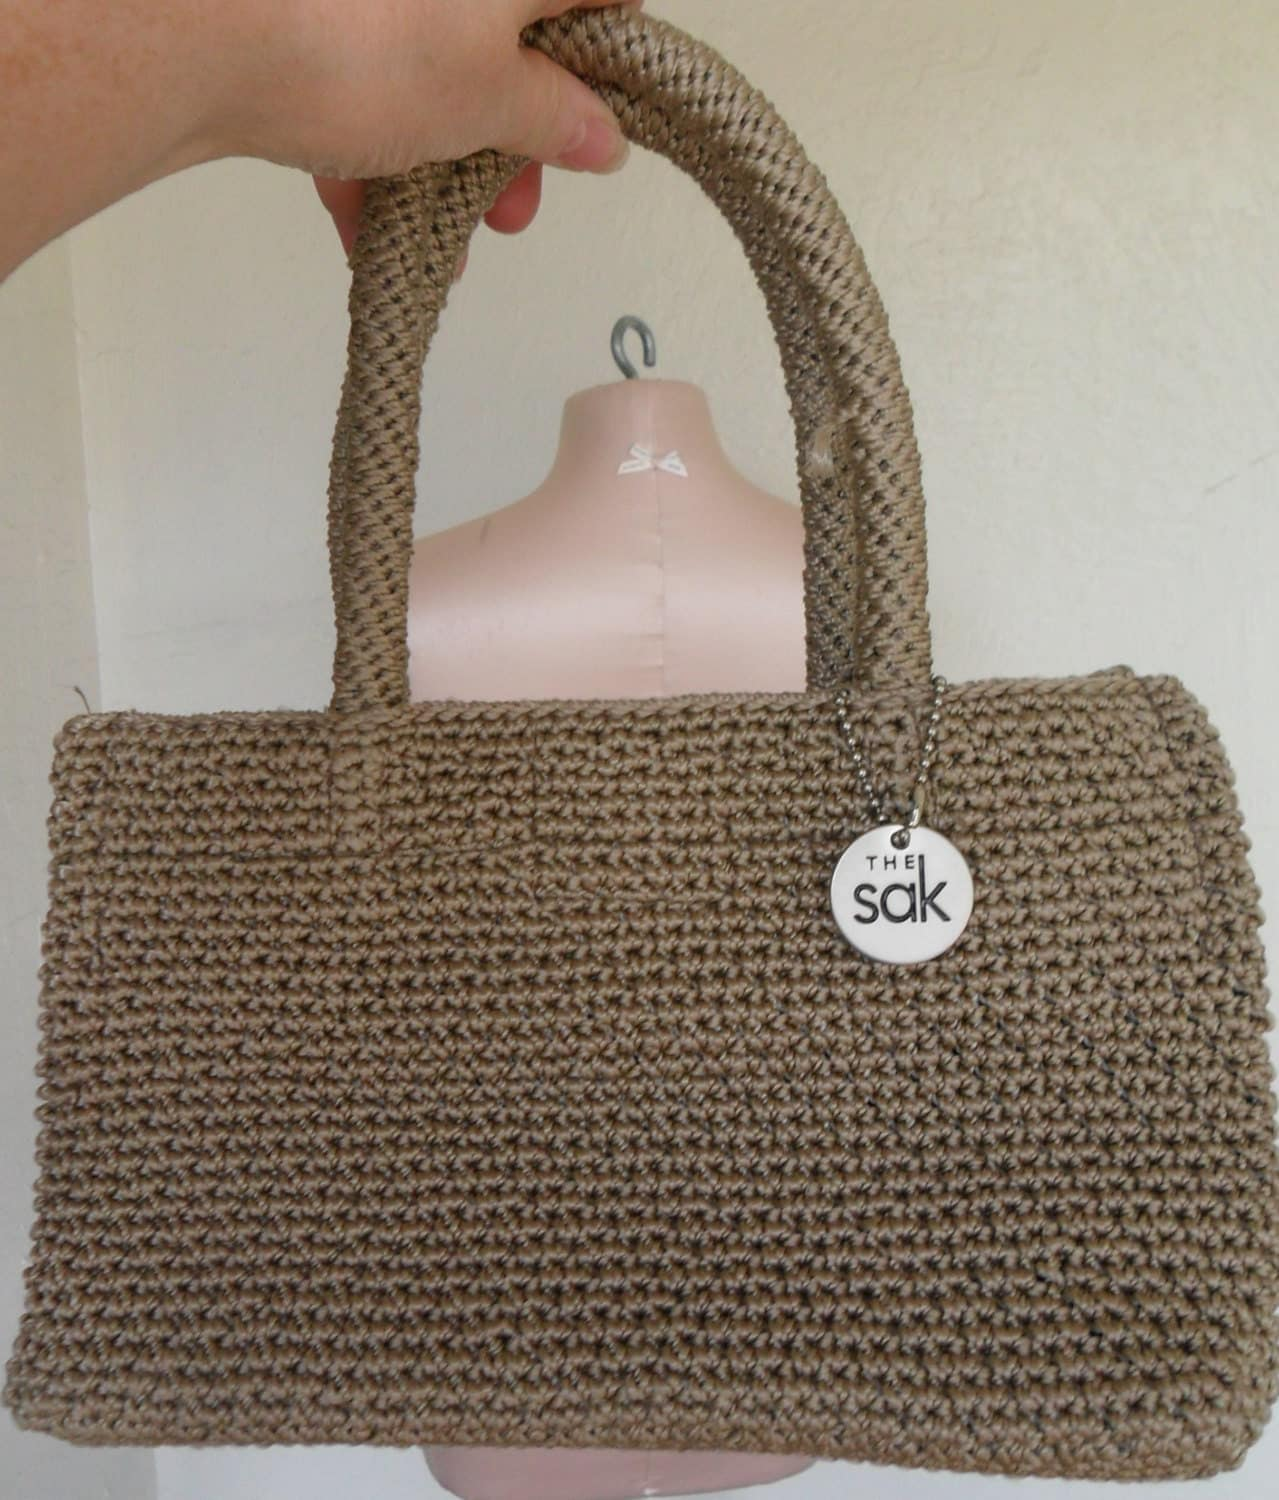 Vintage The Sak Crochet Purse Elliott Lucca by desertgraceboutique